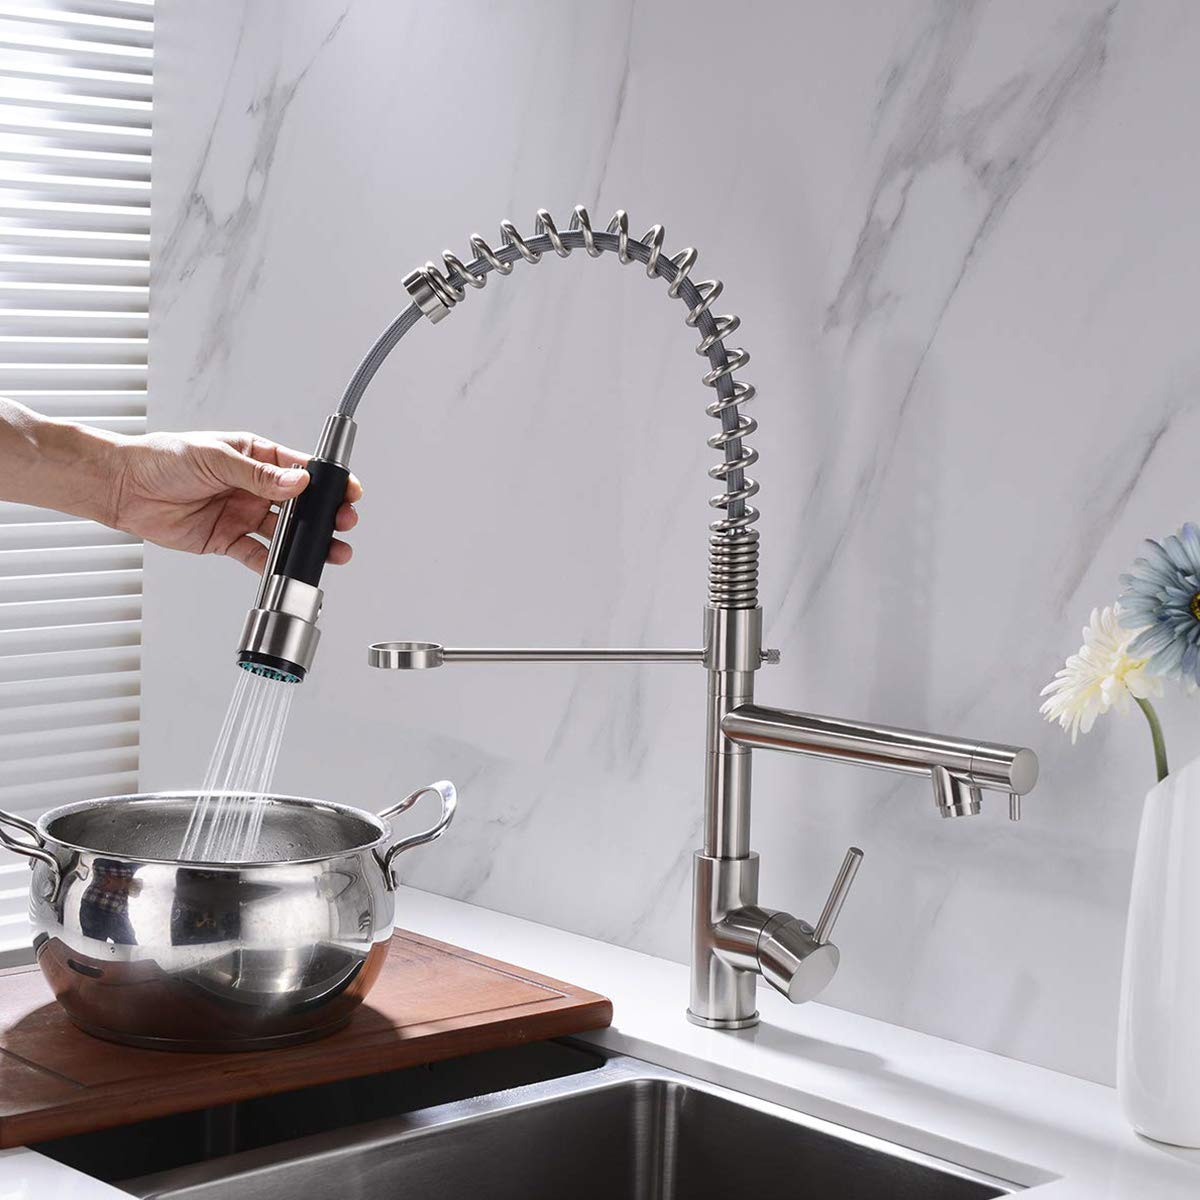 Comllen Faucet Reviews 2020 Read This Before You Spend A Dime